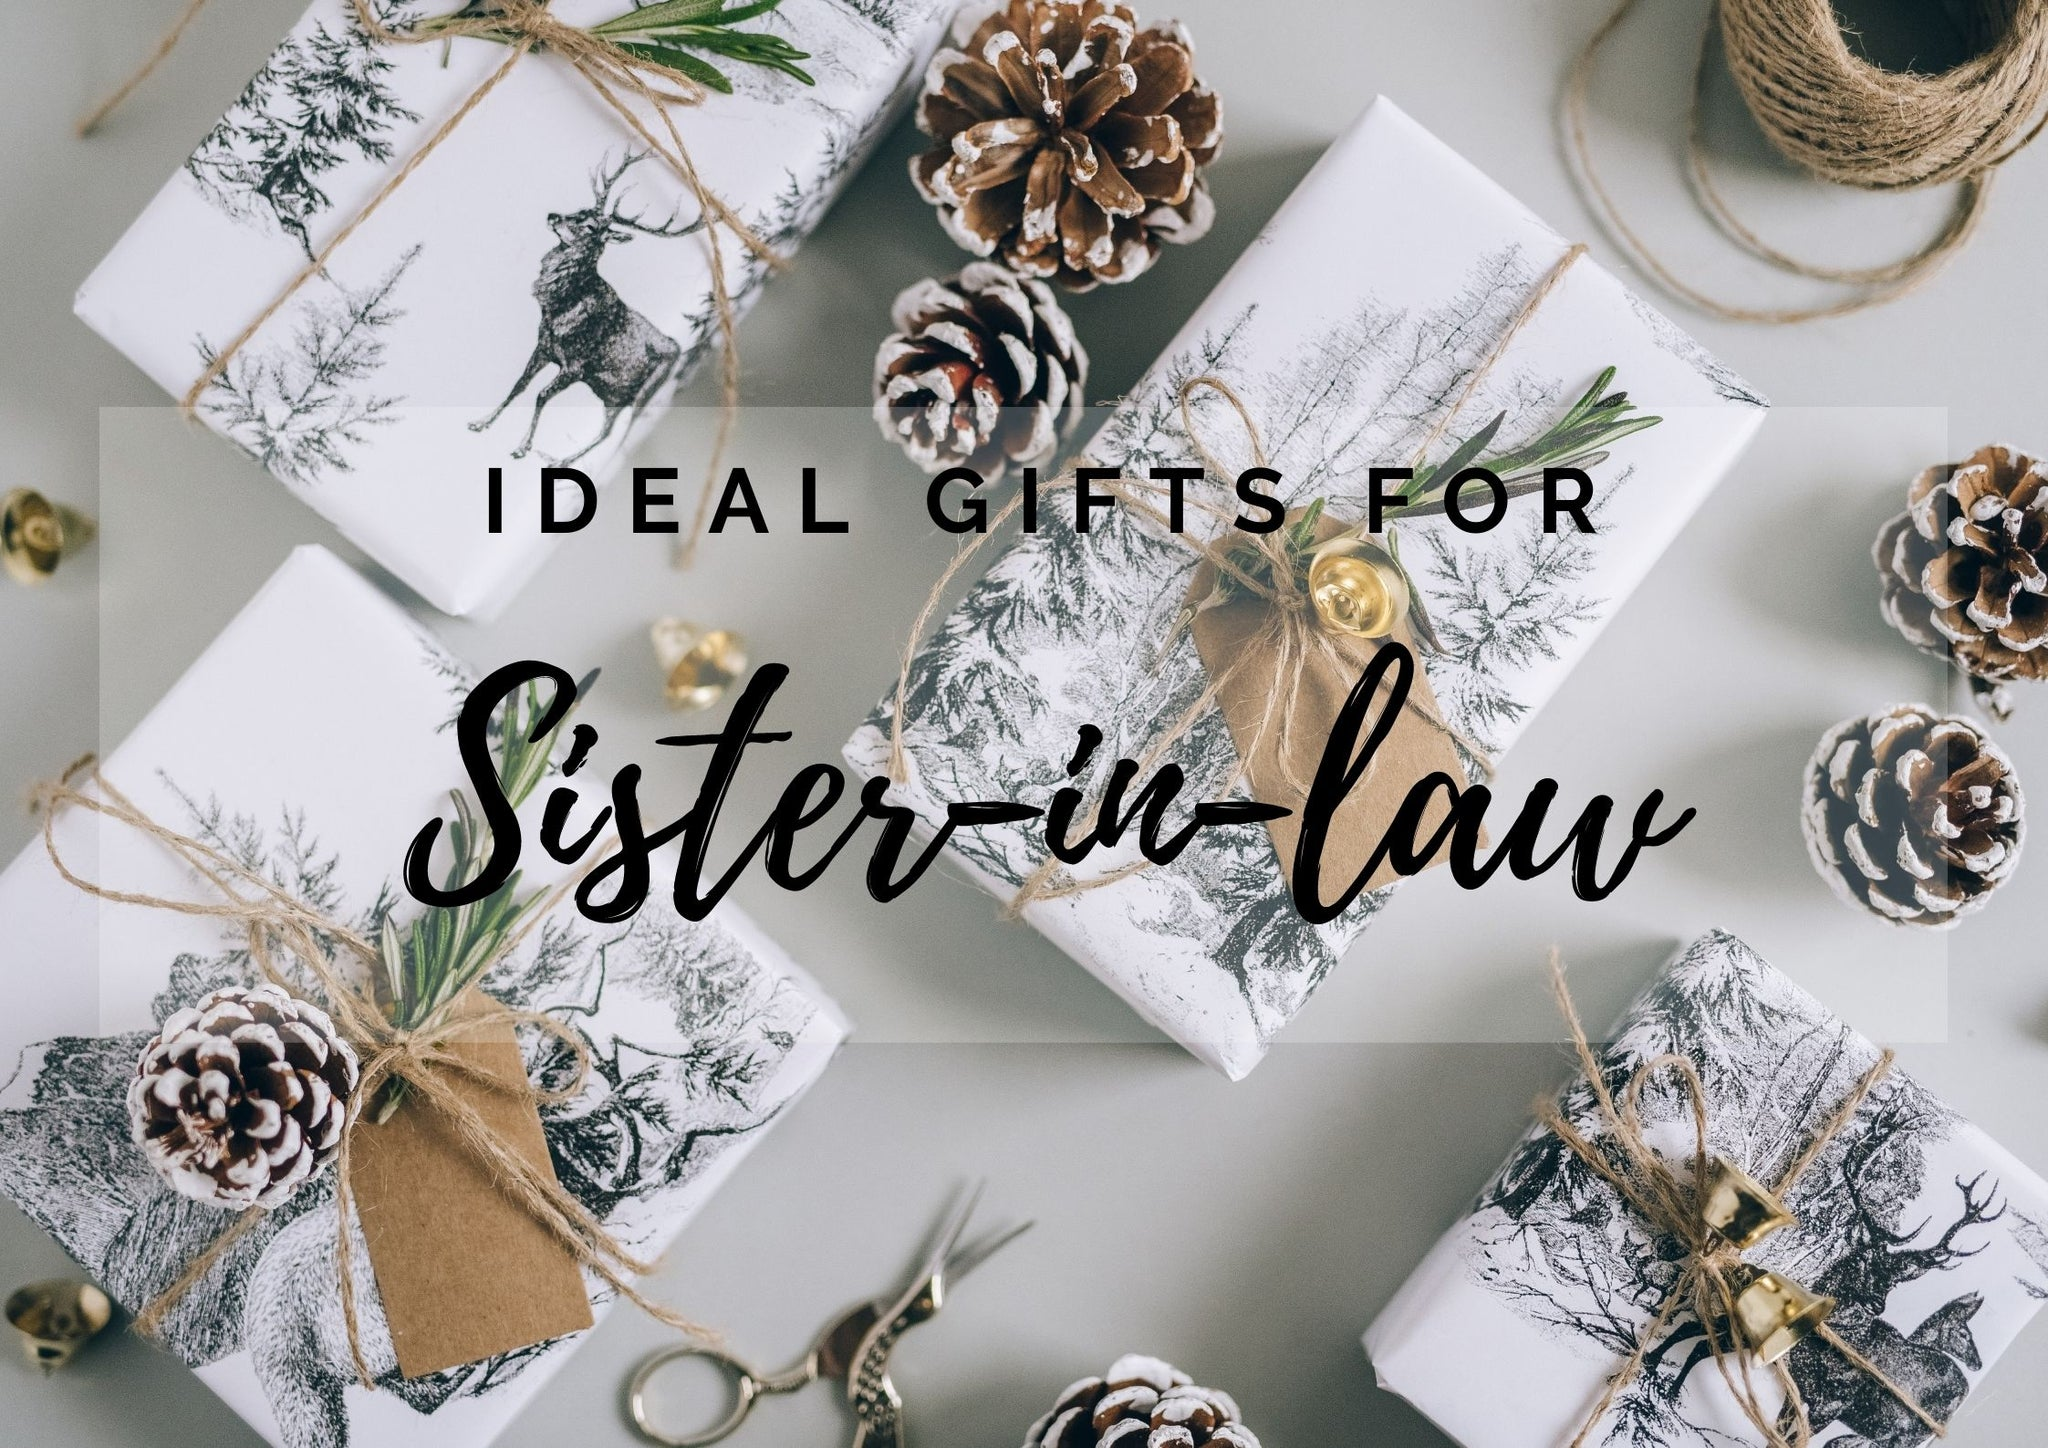 Personalized Gifts For Sister-In-Law